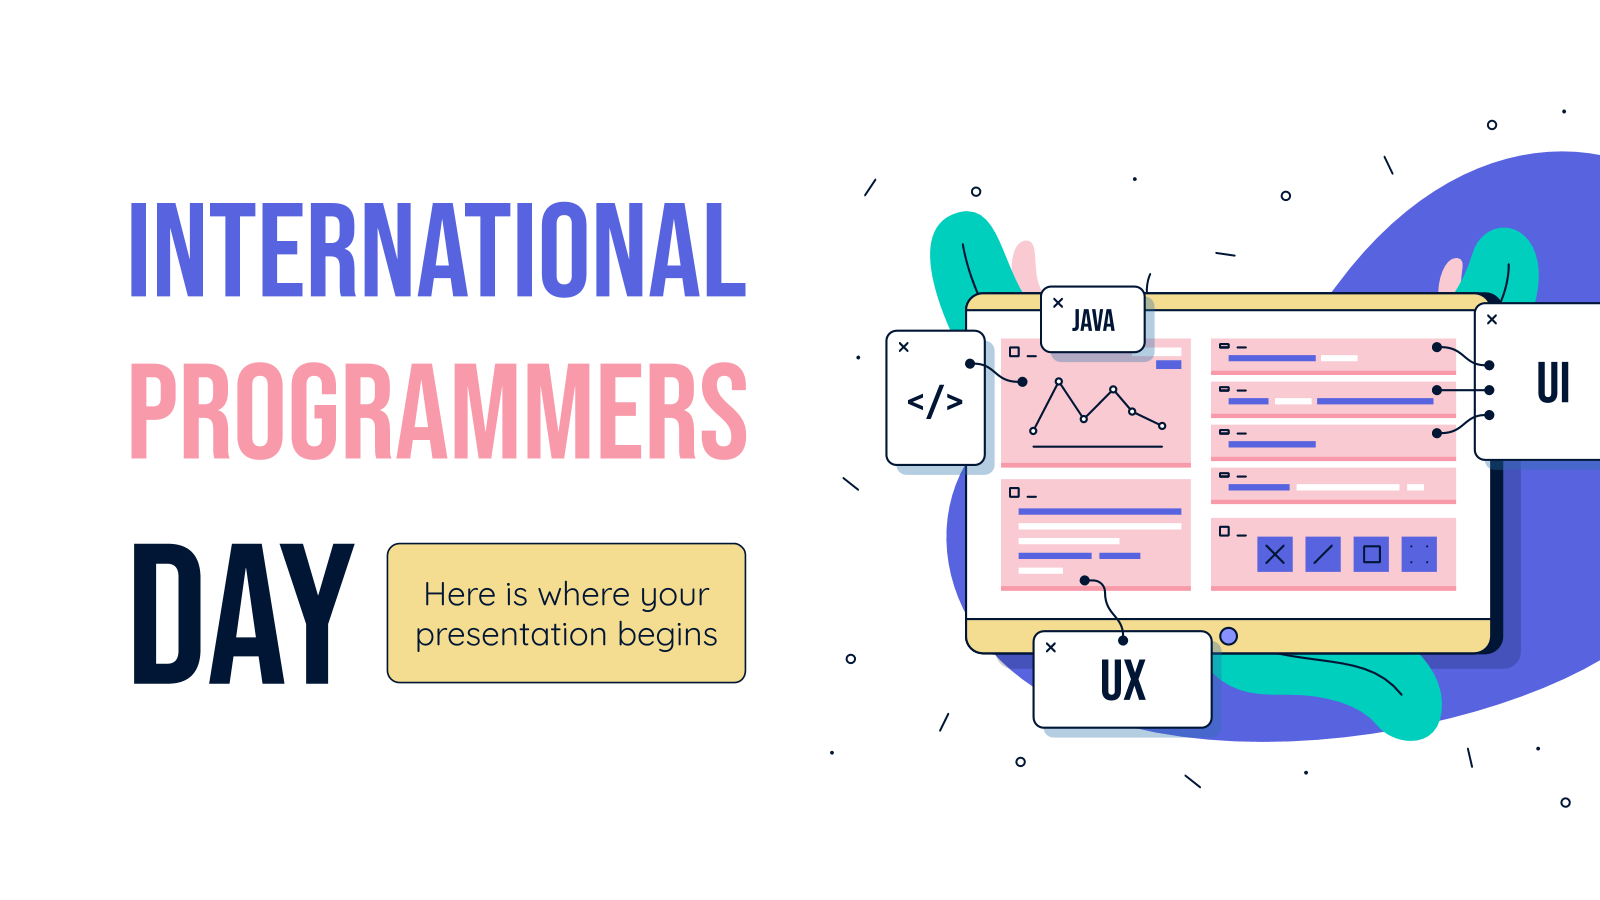 International Programmers Day presentation template